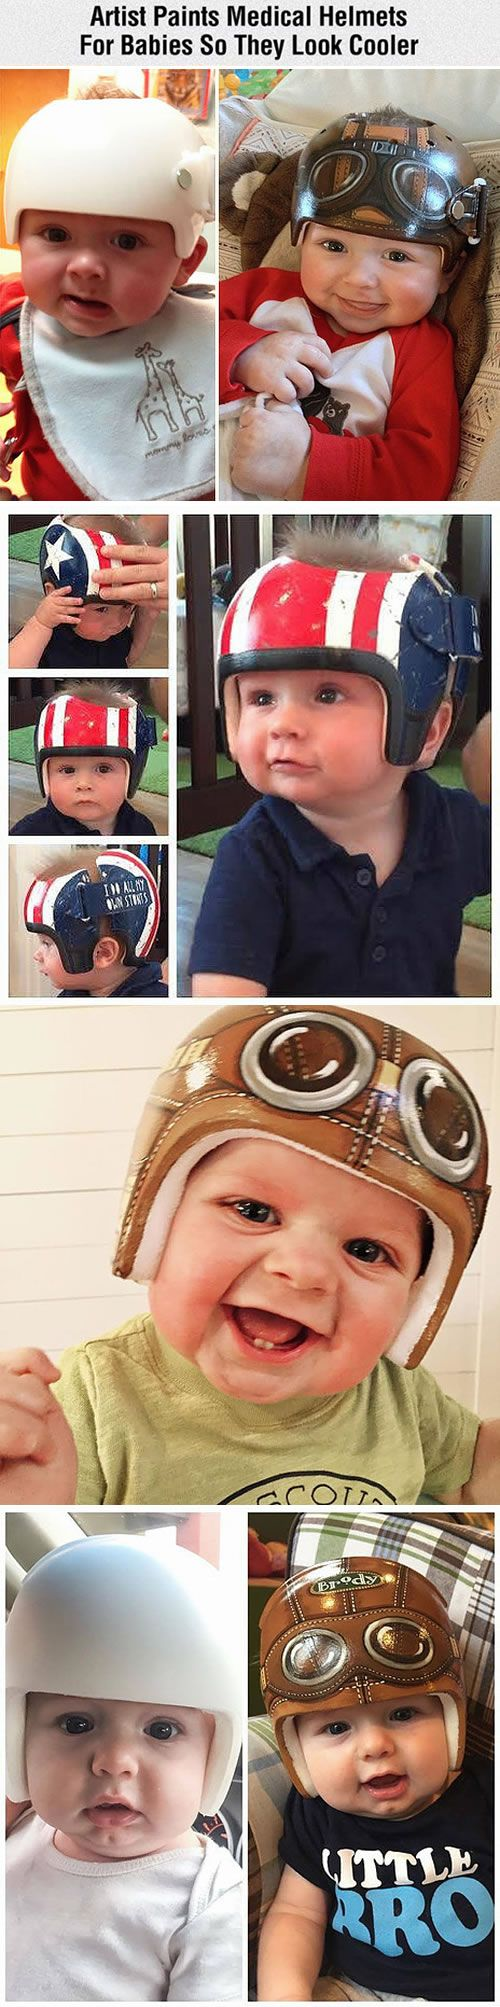 Artist Paula does love kids. She has already been decorating baby helmets for 12+ years and have painted over 2300 of them. Those beautiful and cool medical helmets can really comfort your baby in the hospital. See more of her wonderful jobs: on Smugsmug and Facbook